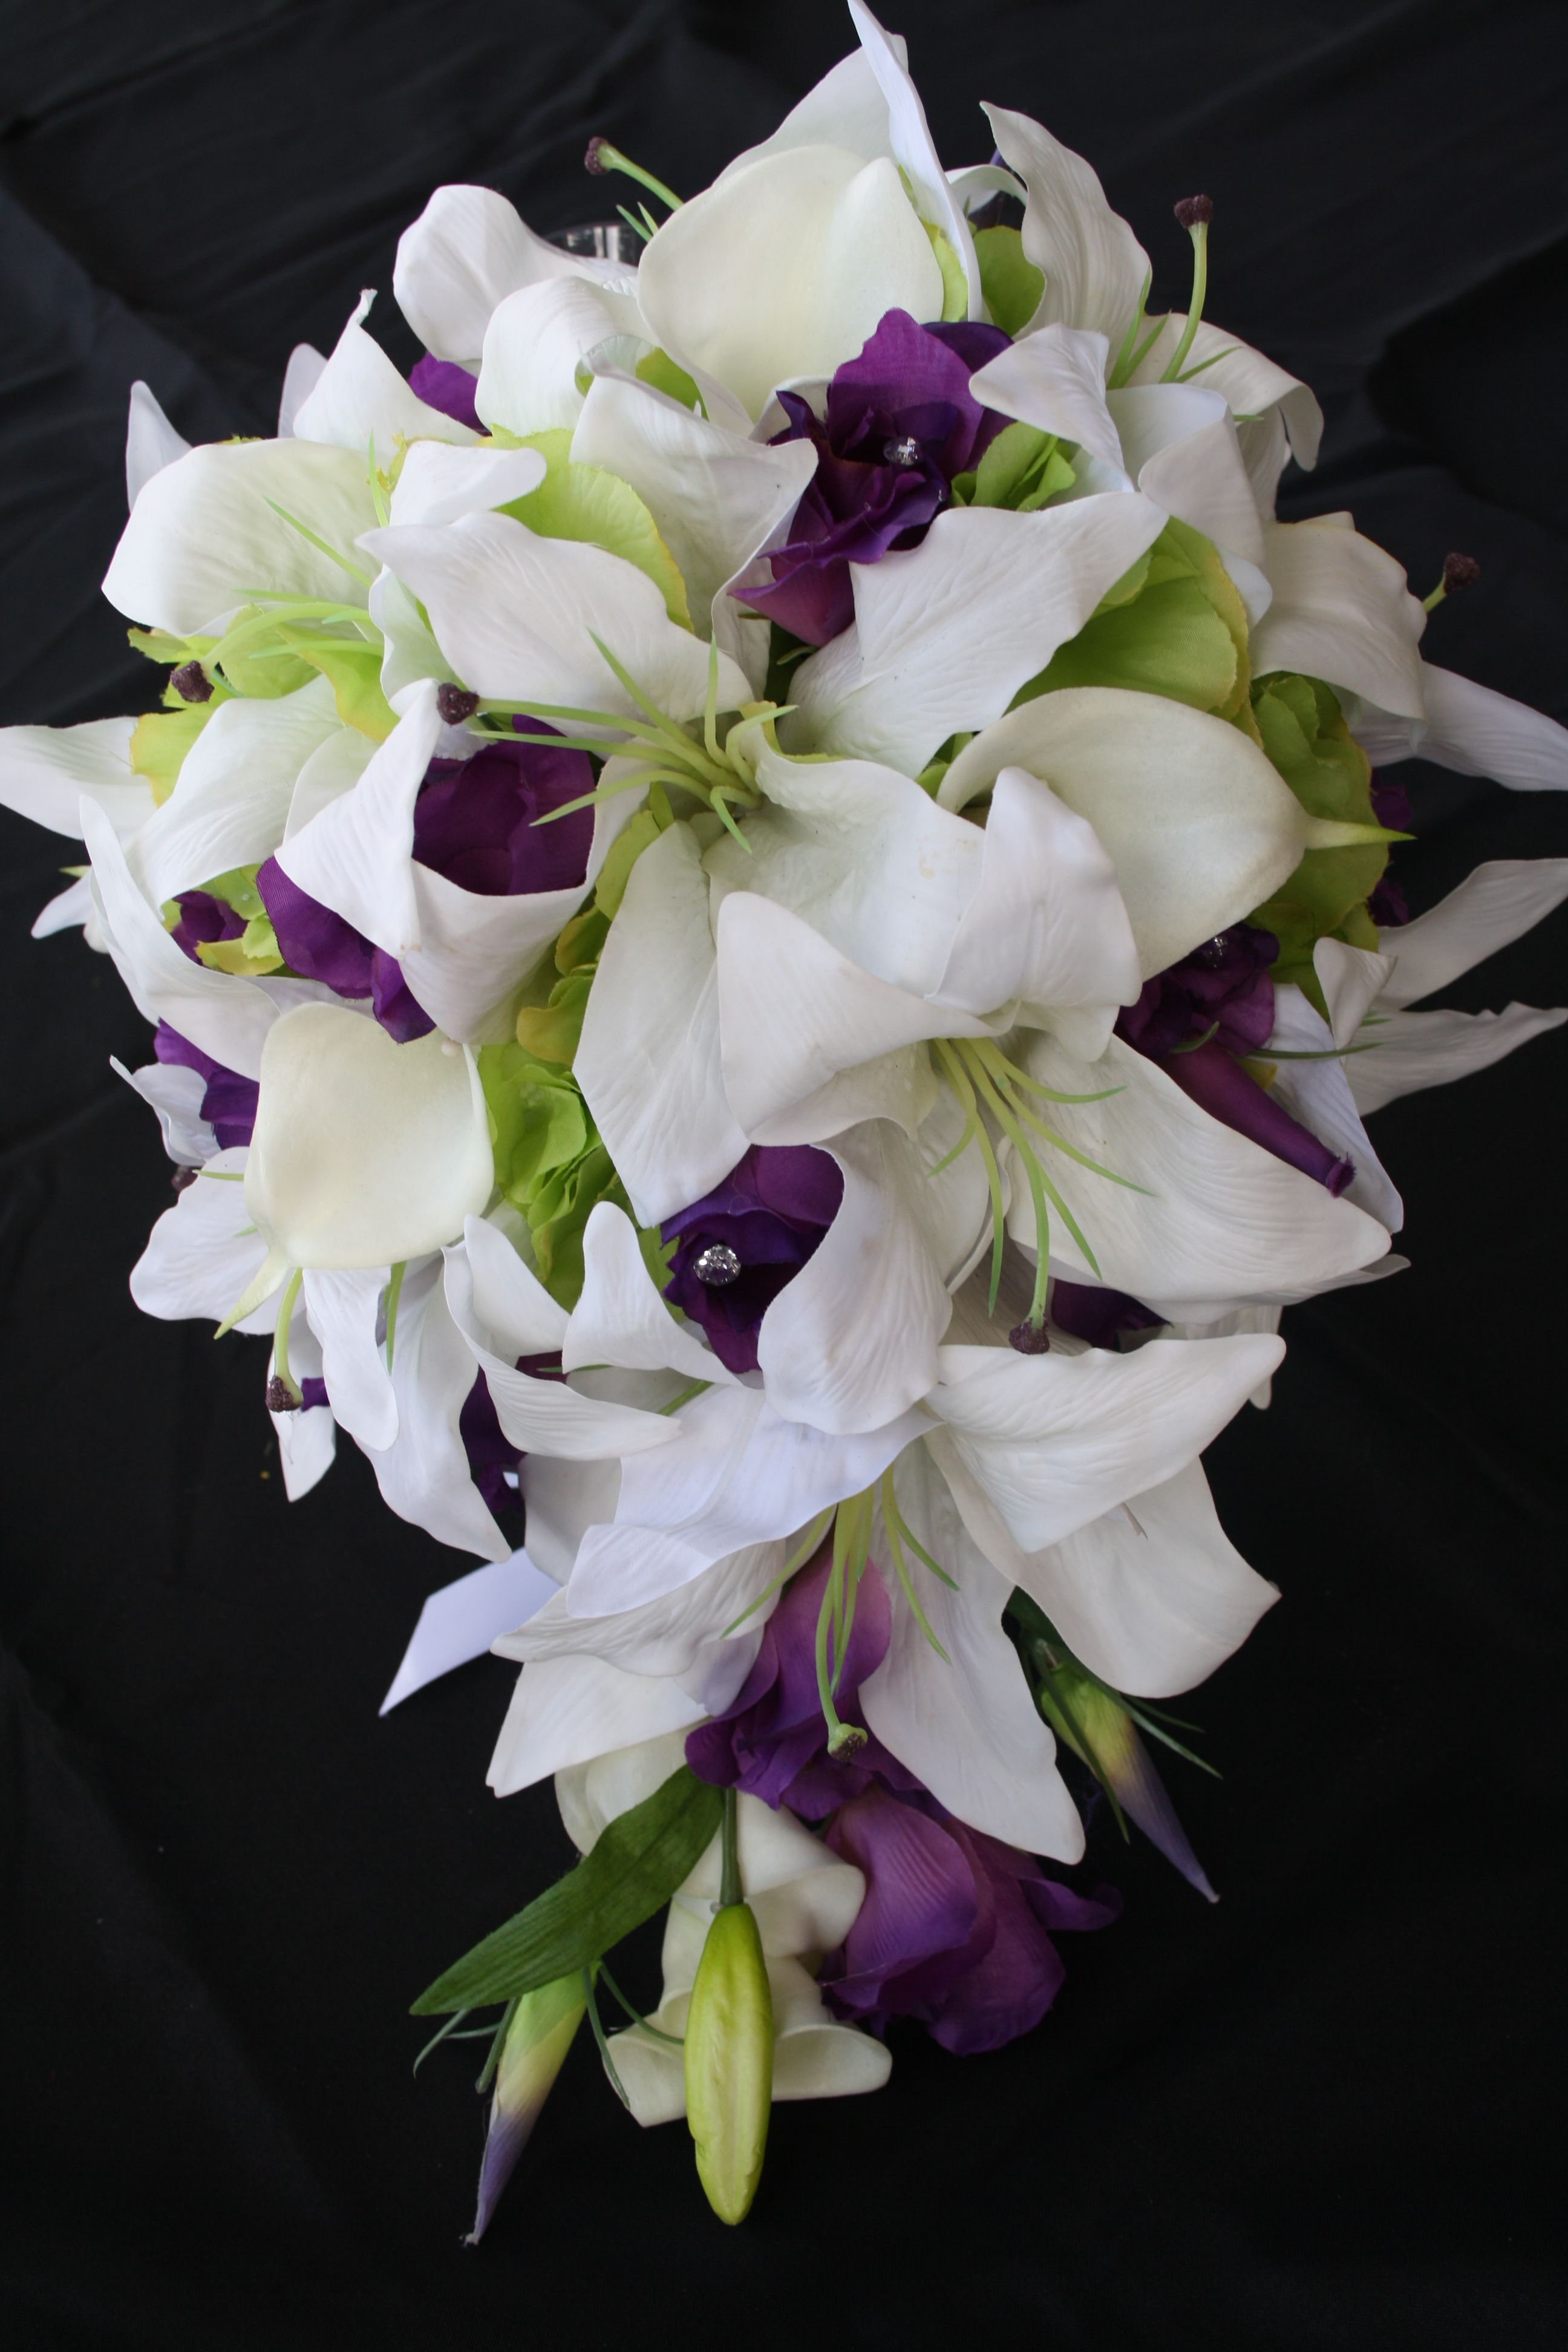 Teardrop bouquet of White Lillies, Purple Lisianthus, White Calla Lillies, Green Hydrangea and crystals